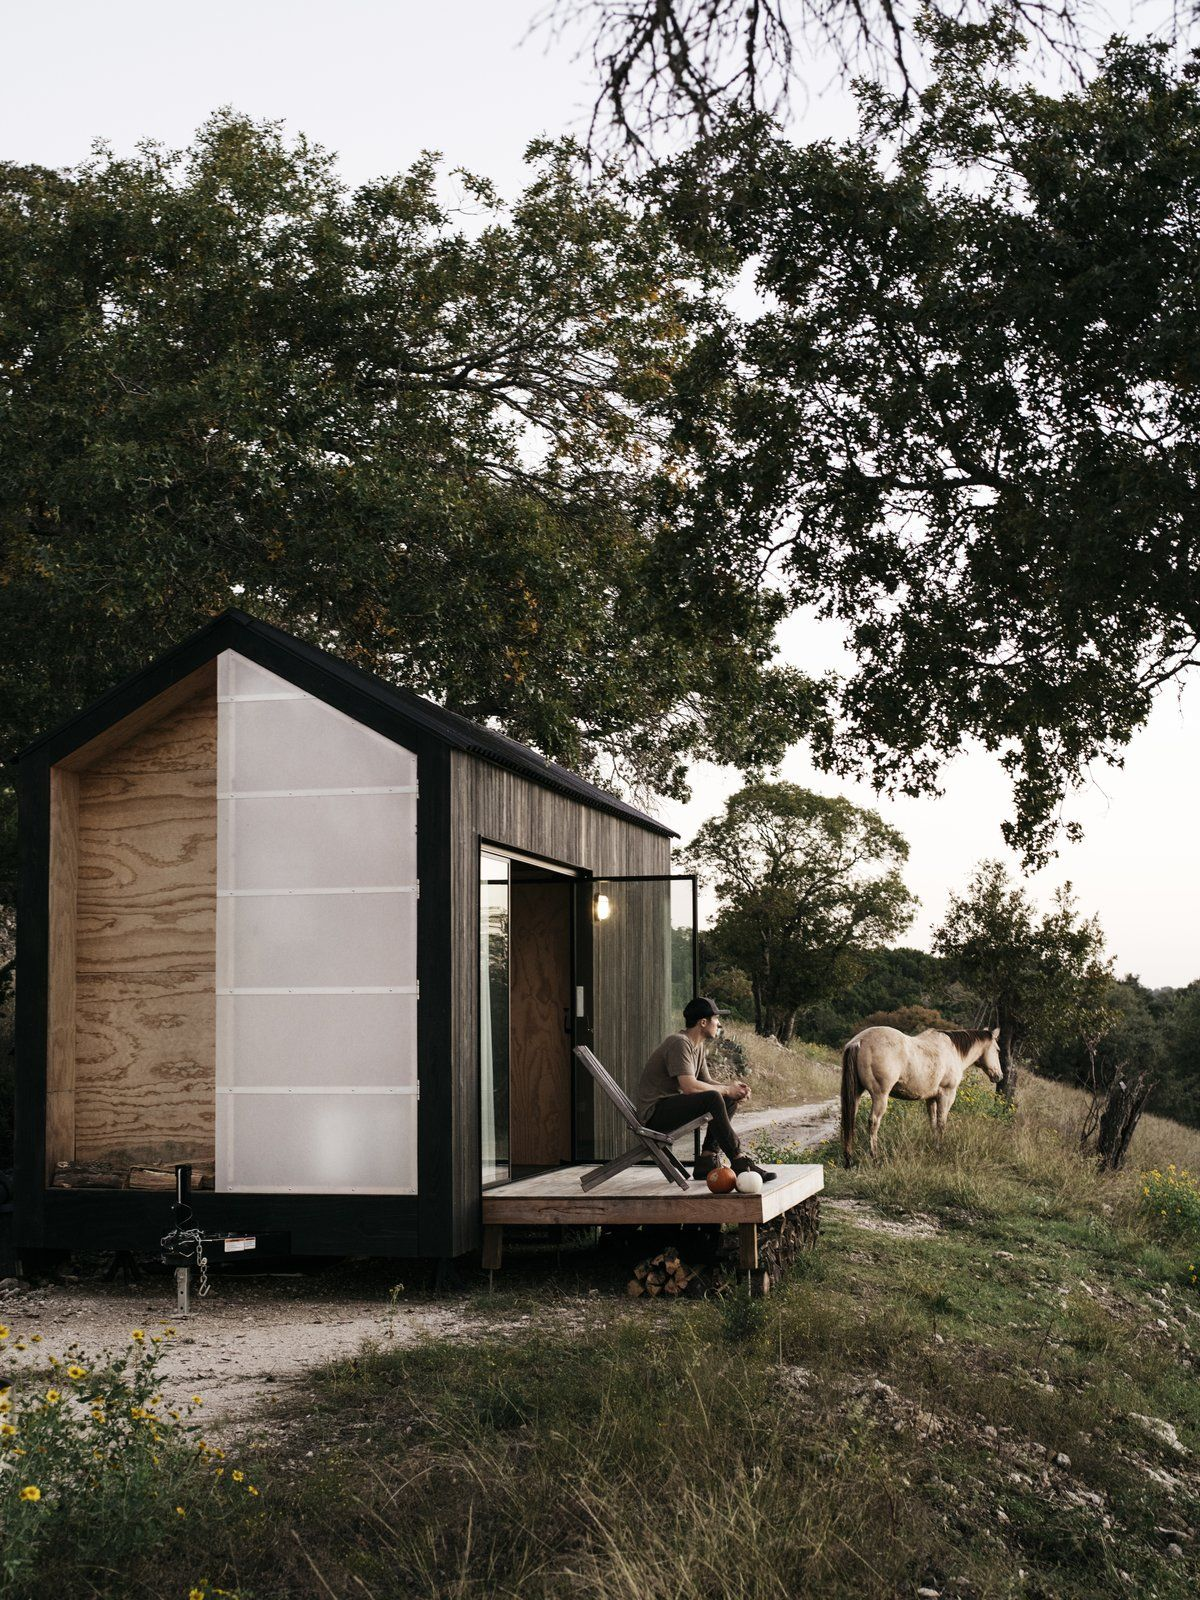 A small wooden deck acts as a connector between the cabin and the landscape